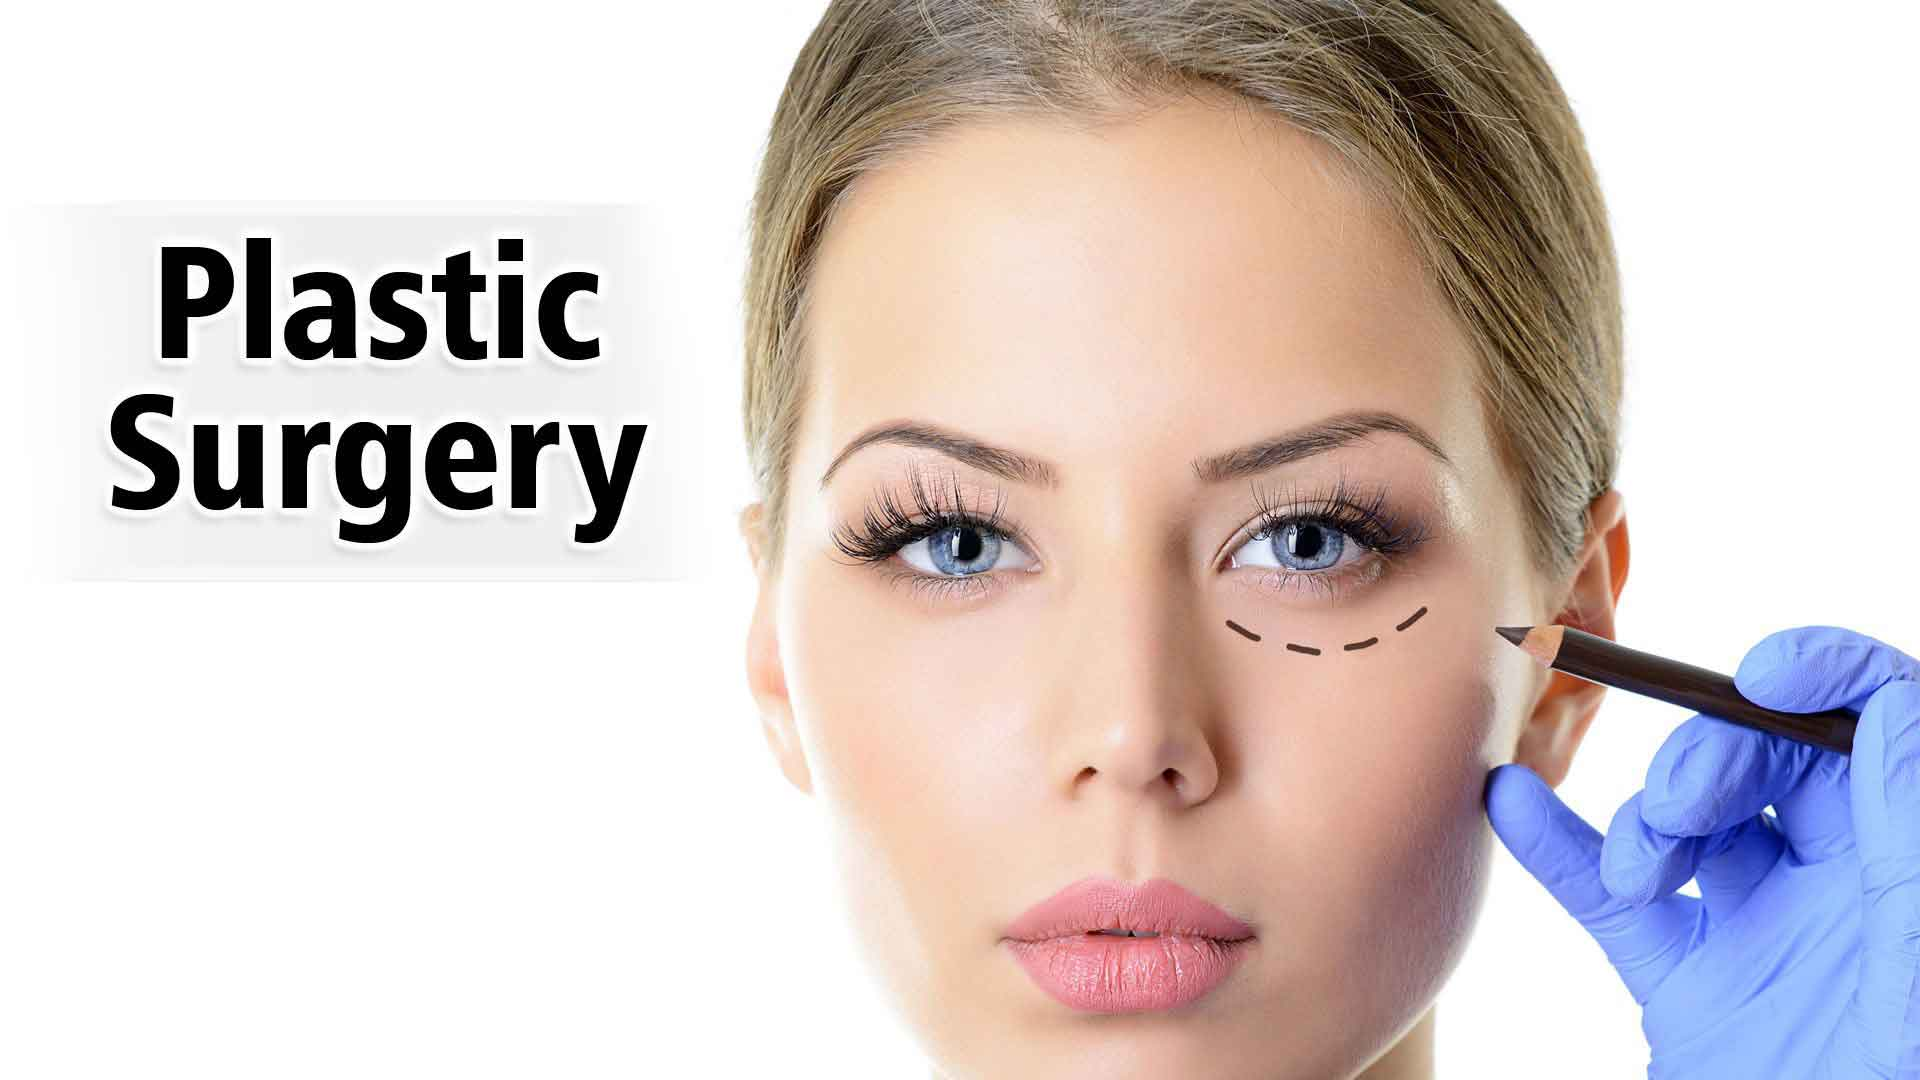 Plastic surgery disasters 1